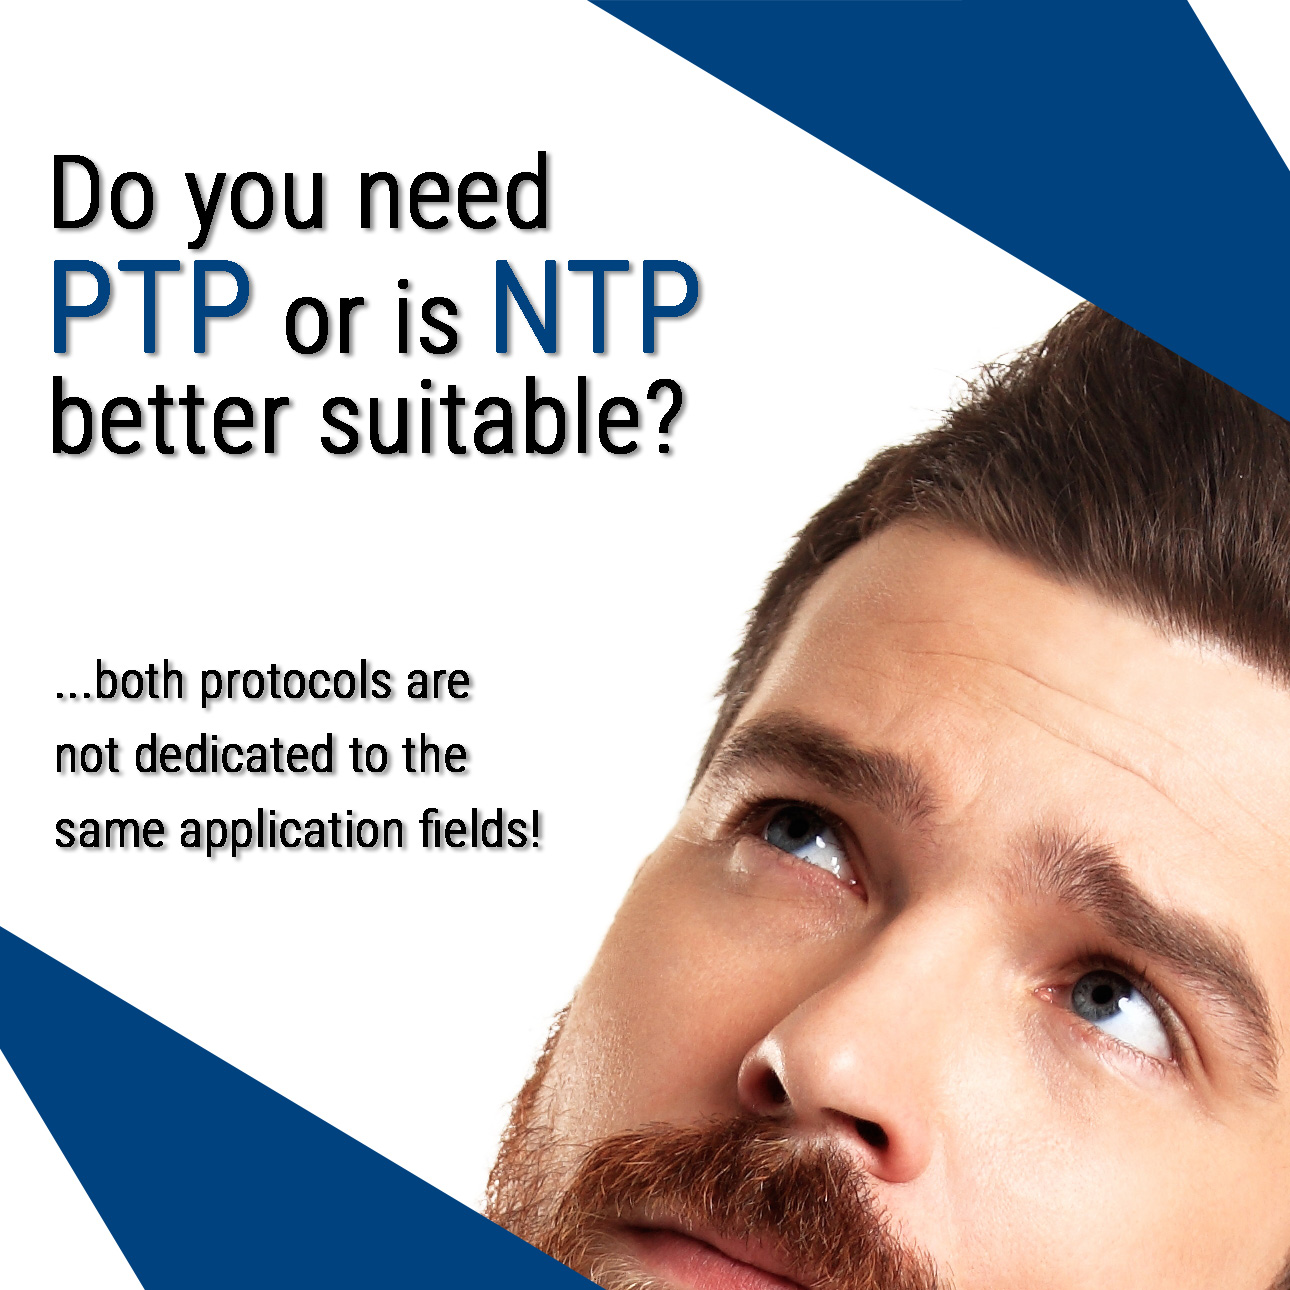 Do you need PTP or is NTP better suitable?